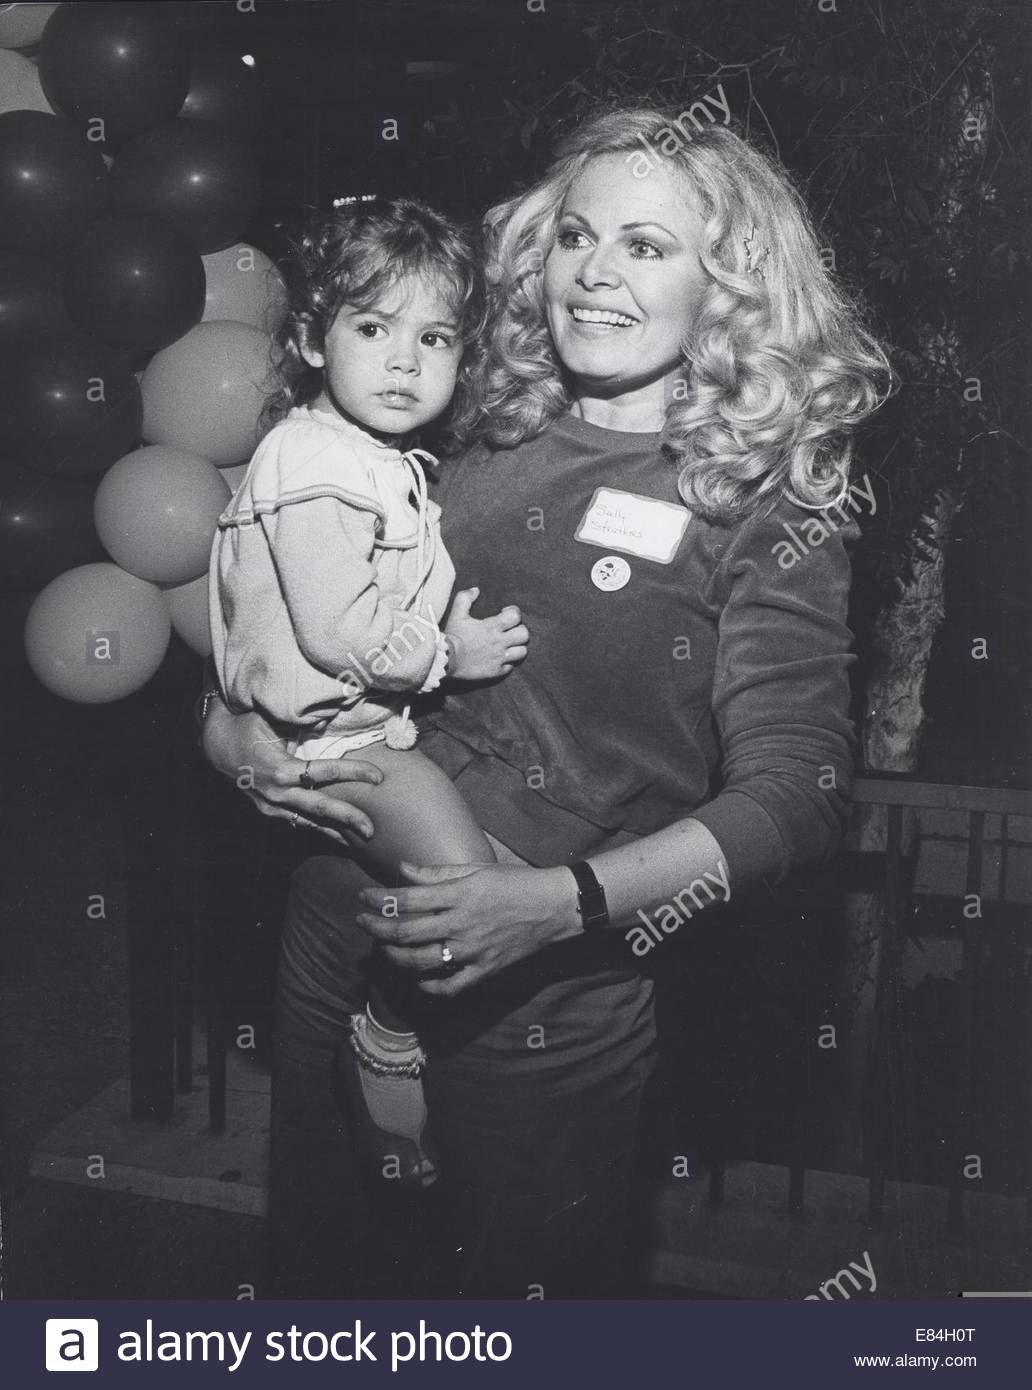 Sally Struthers nudes (36 photos), Topless, Hot, Twitter, swimsuit 2020